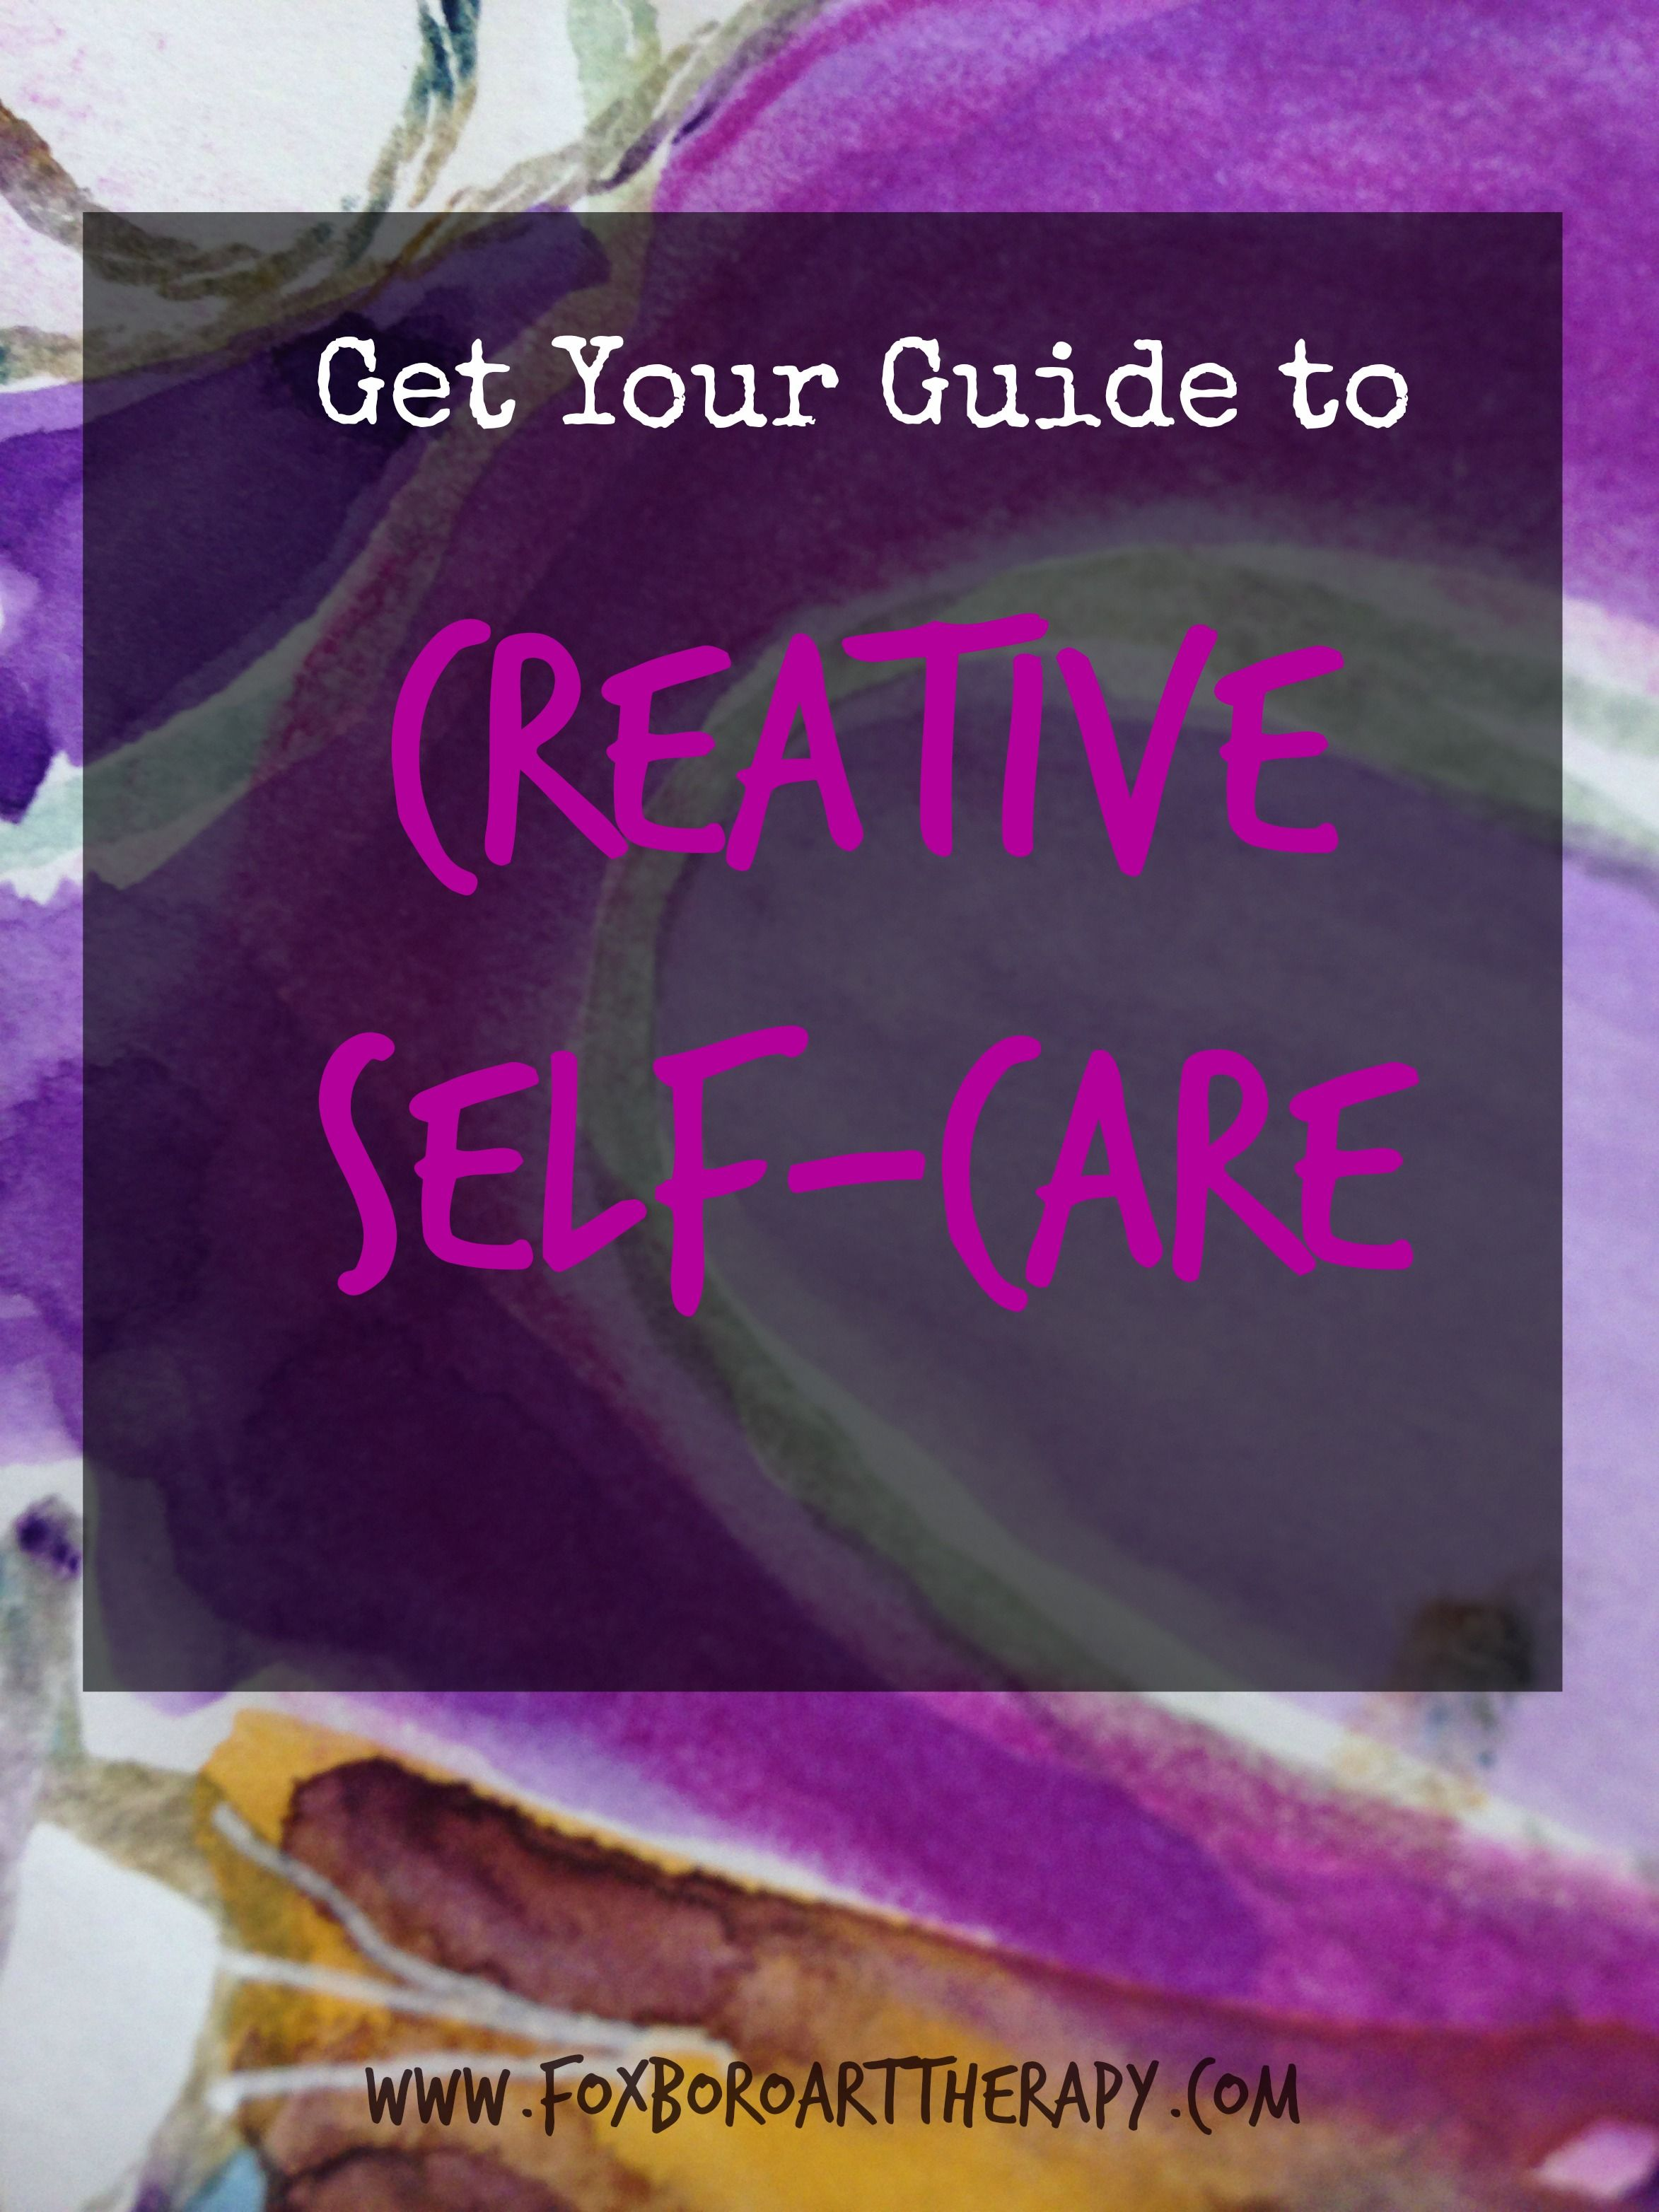 a free guide to creative self care ideas, assessment, and myths that get in your way.